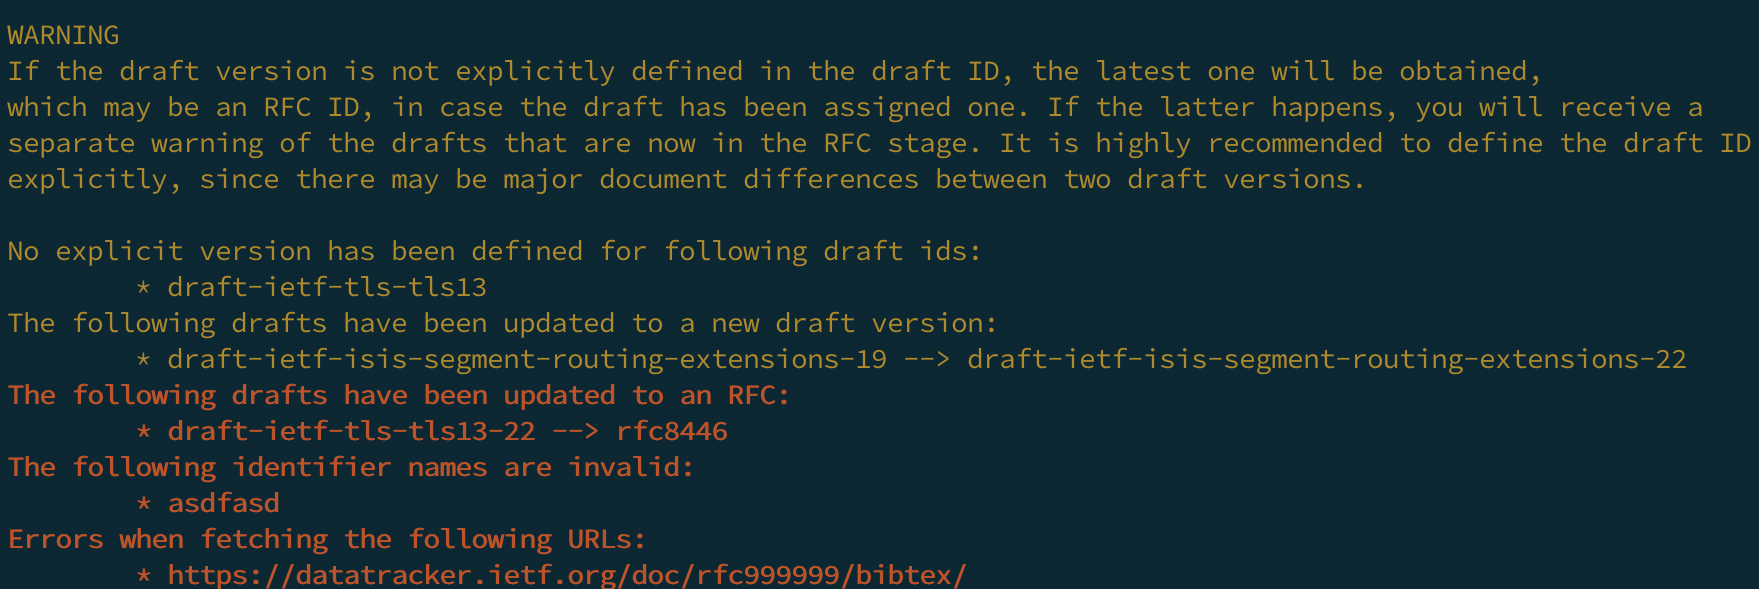 RFCBibTex Errors and Warnings Example